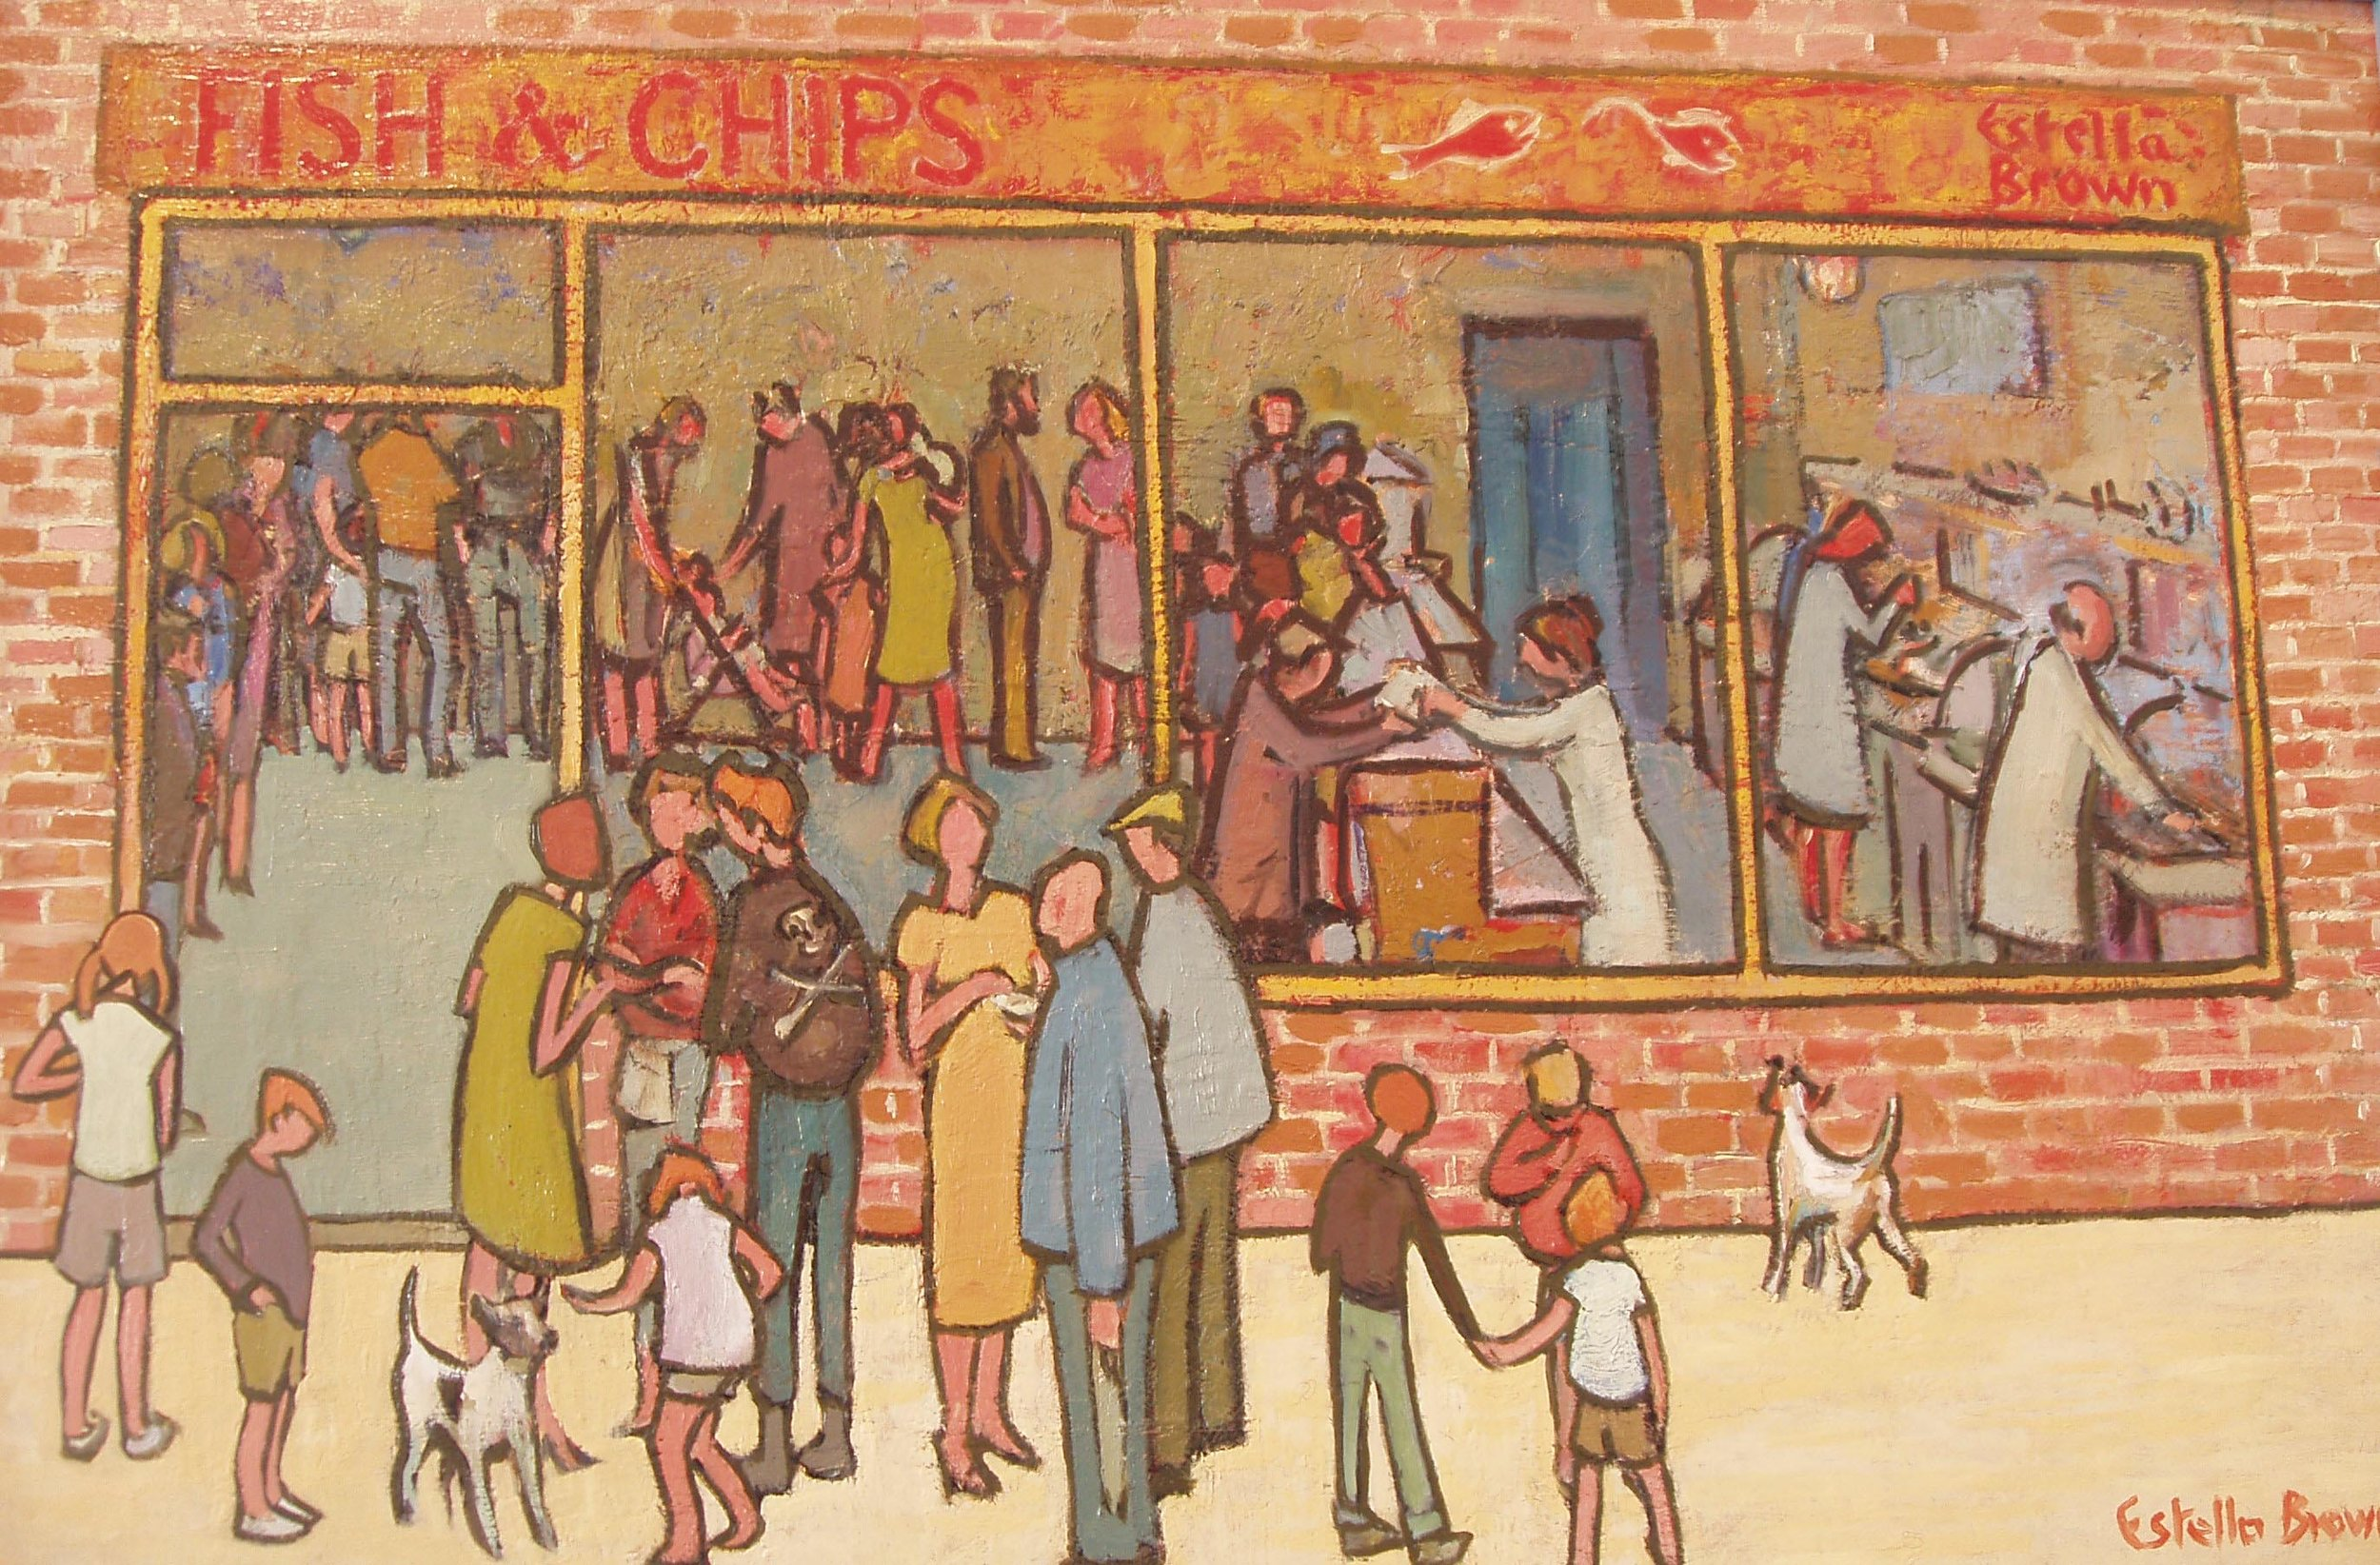 Estella Brown - Fish and Chip Shop I